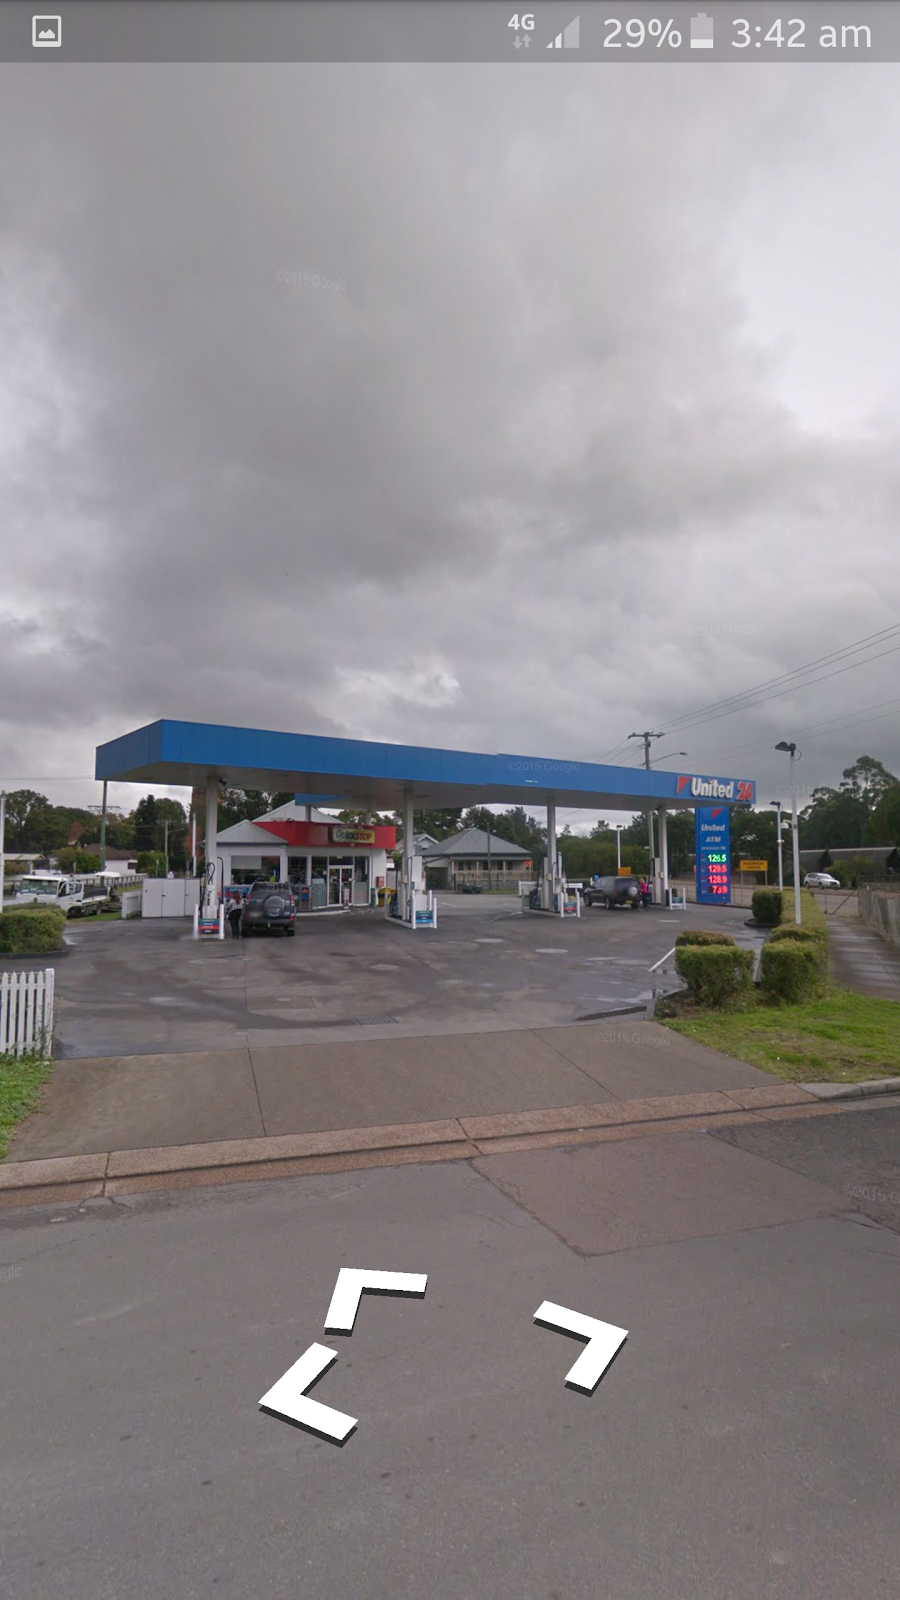 United (Pie Face) | gas station | Lot 10/12 Les Darcy Dr, Maitland NSW 2320, Australia | 0249333991 OR +61 2 4933 3991